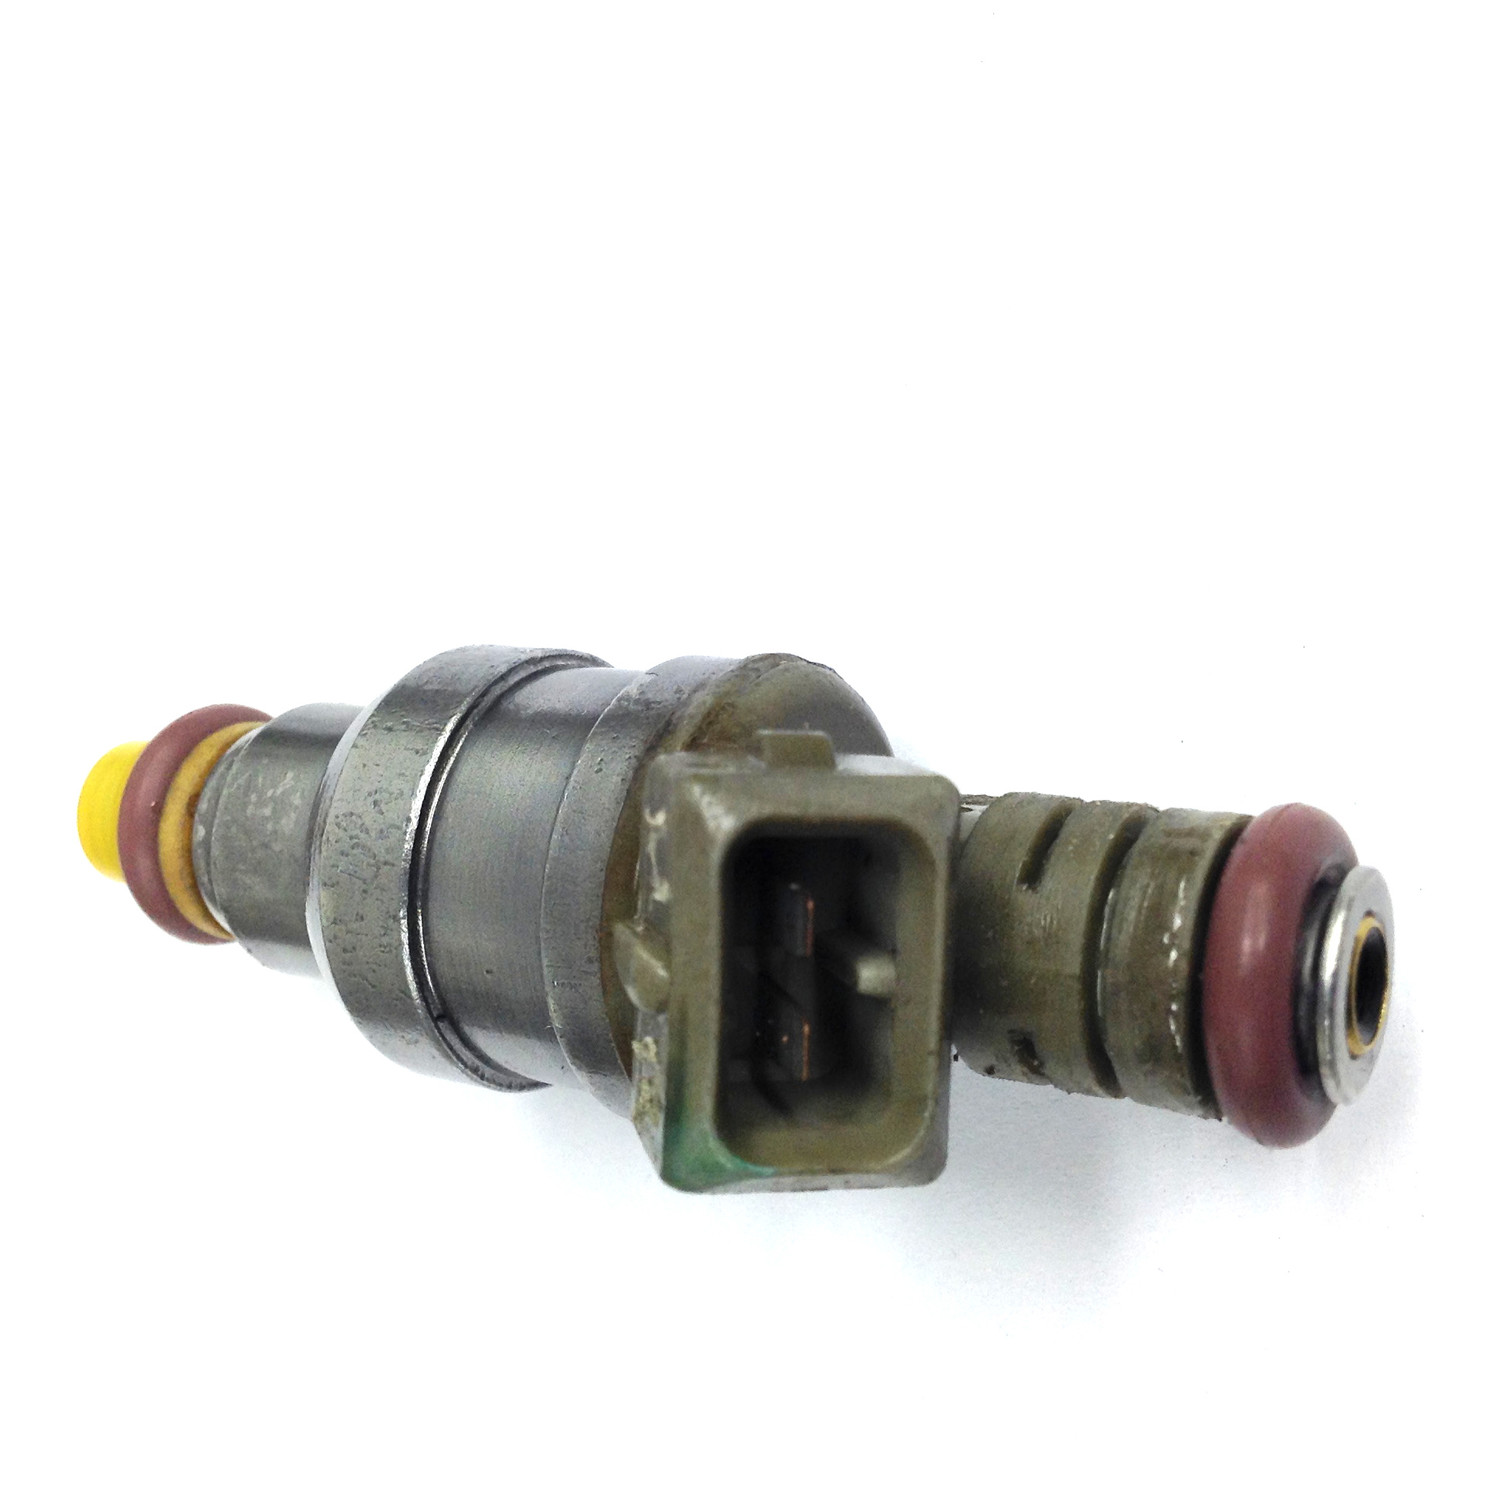 UNITED REMANUFACTURING CO - Fuel Injector - URC 9076